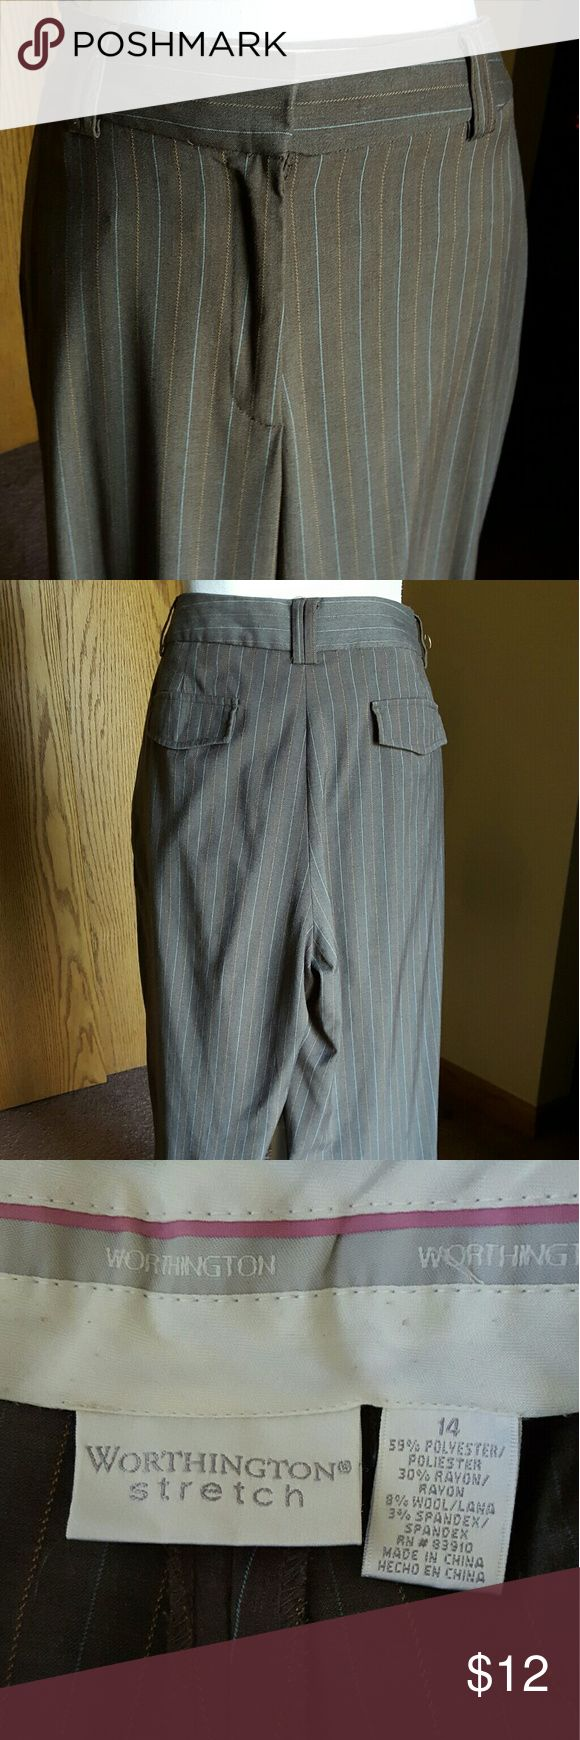 """Worthington slacks. Gray pinstriped. Size 14. Worthington, ladies size 14. Medium gray with pale blue and orange pinstripes. Faux back pockets with flats helps give a smooth look to the rear. Front pockets have been sewn shut to help flatten the tummy area.  At 5'3"""", average length is a bit too long for me and petite is too short for my liking, so most all pants listed have been carefully measured & hemmed. Hem length is hand sewn at 28"""". Rise is 10 1/2"""". Pictured for reference.  Loved…"""